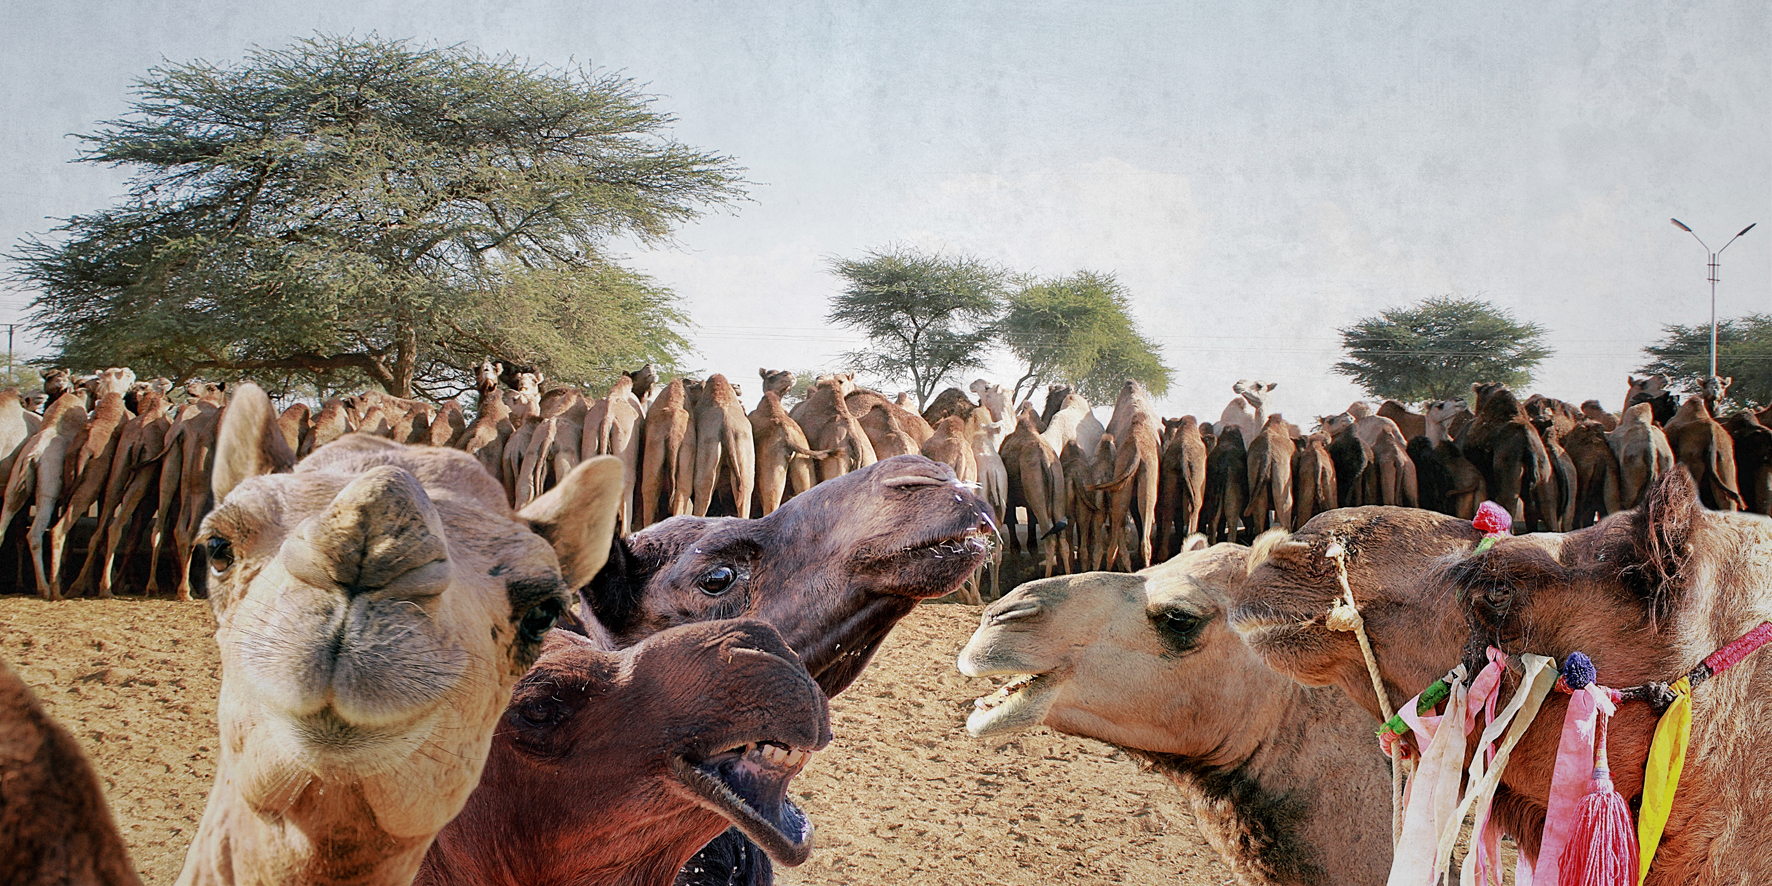 Kamelmilch. National Research Centre on Camels. Fotocollage, C-Print, kaschiert mit Acryl